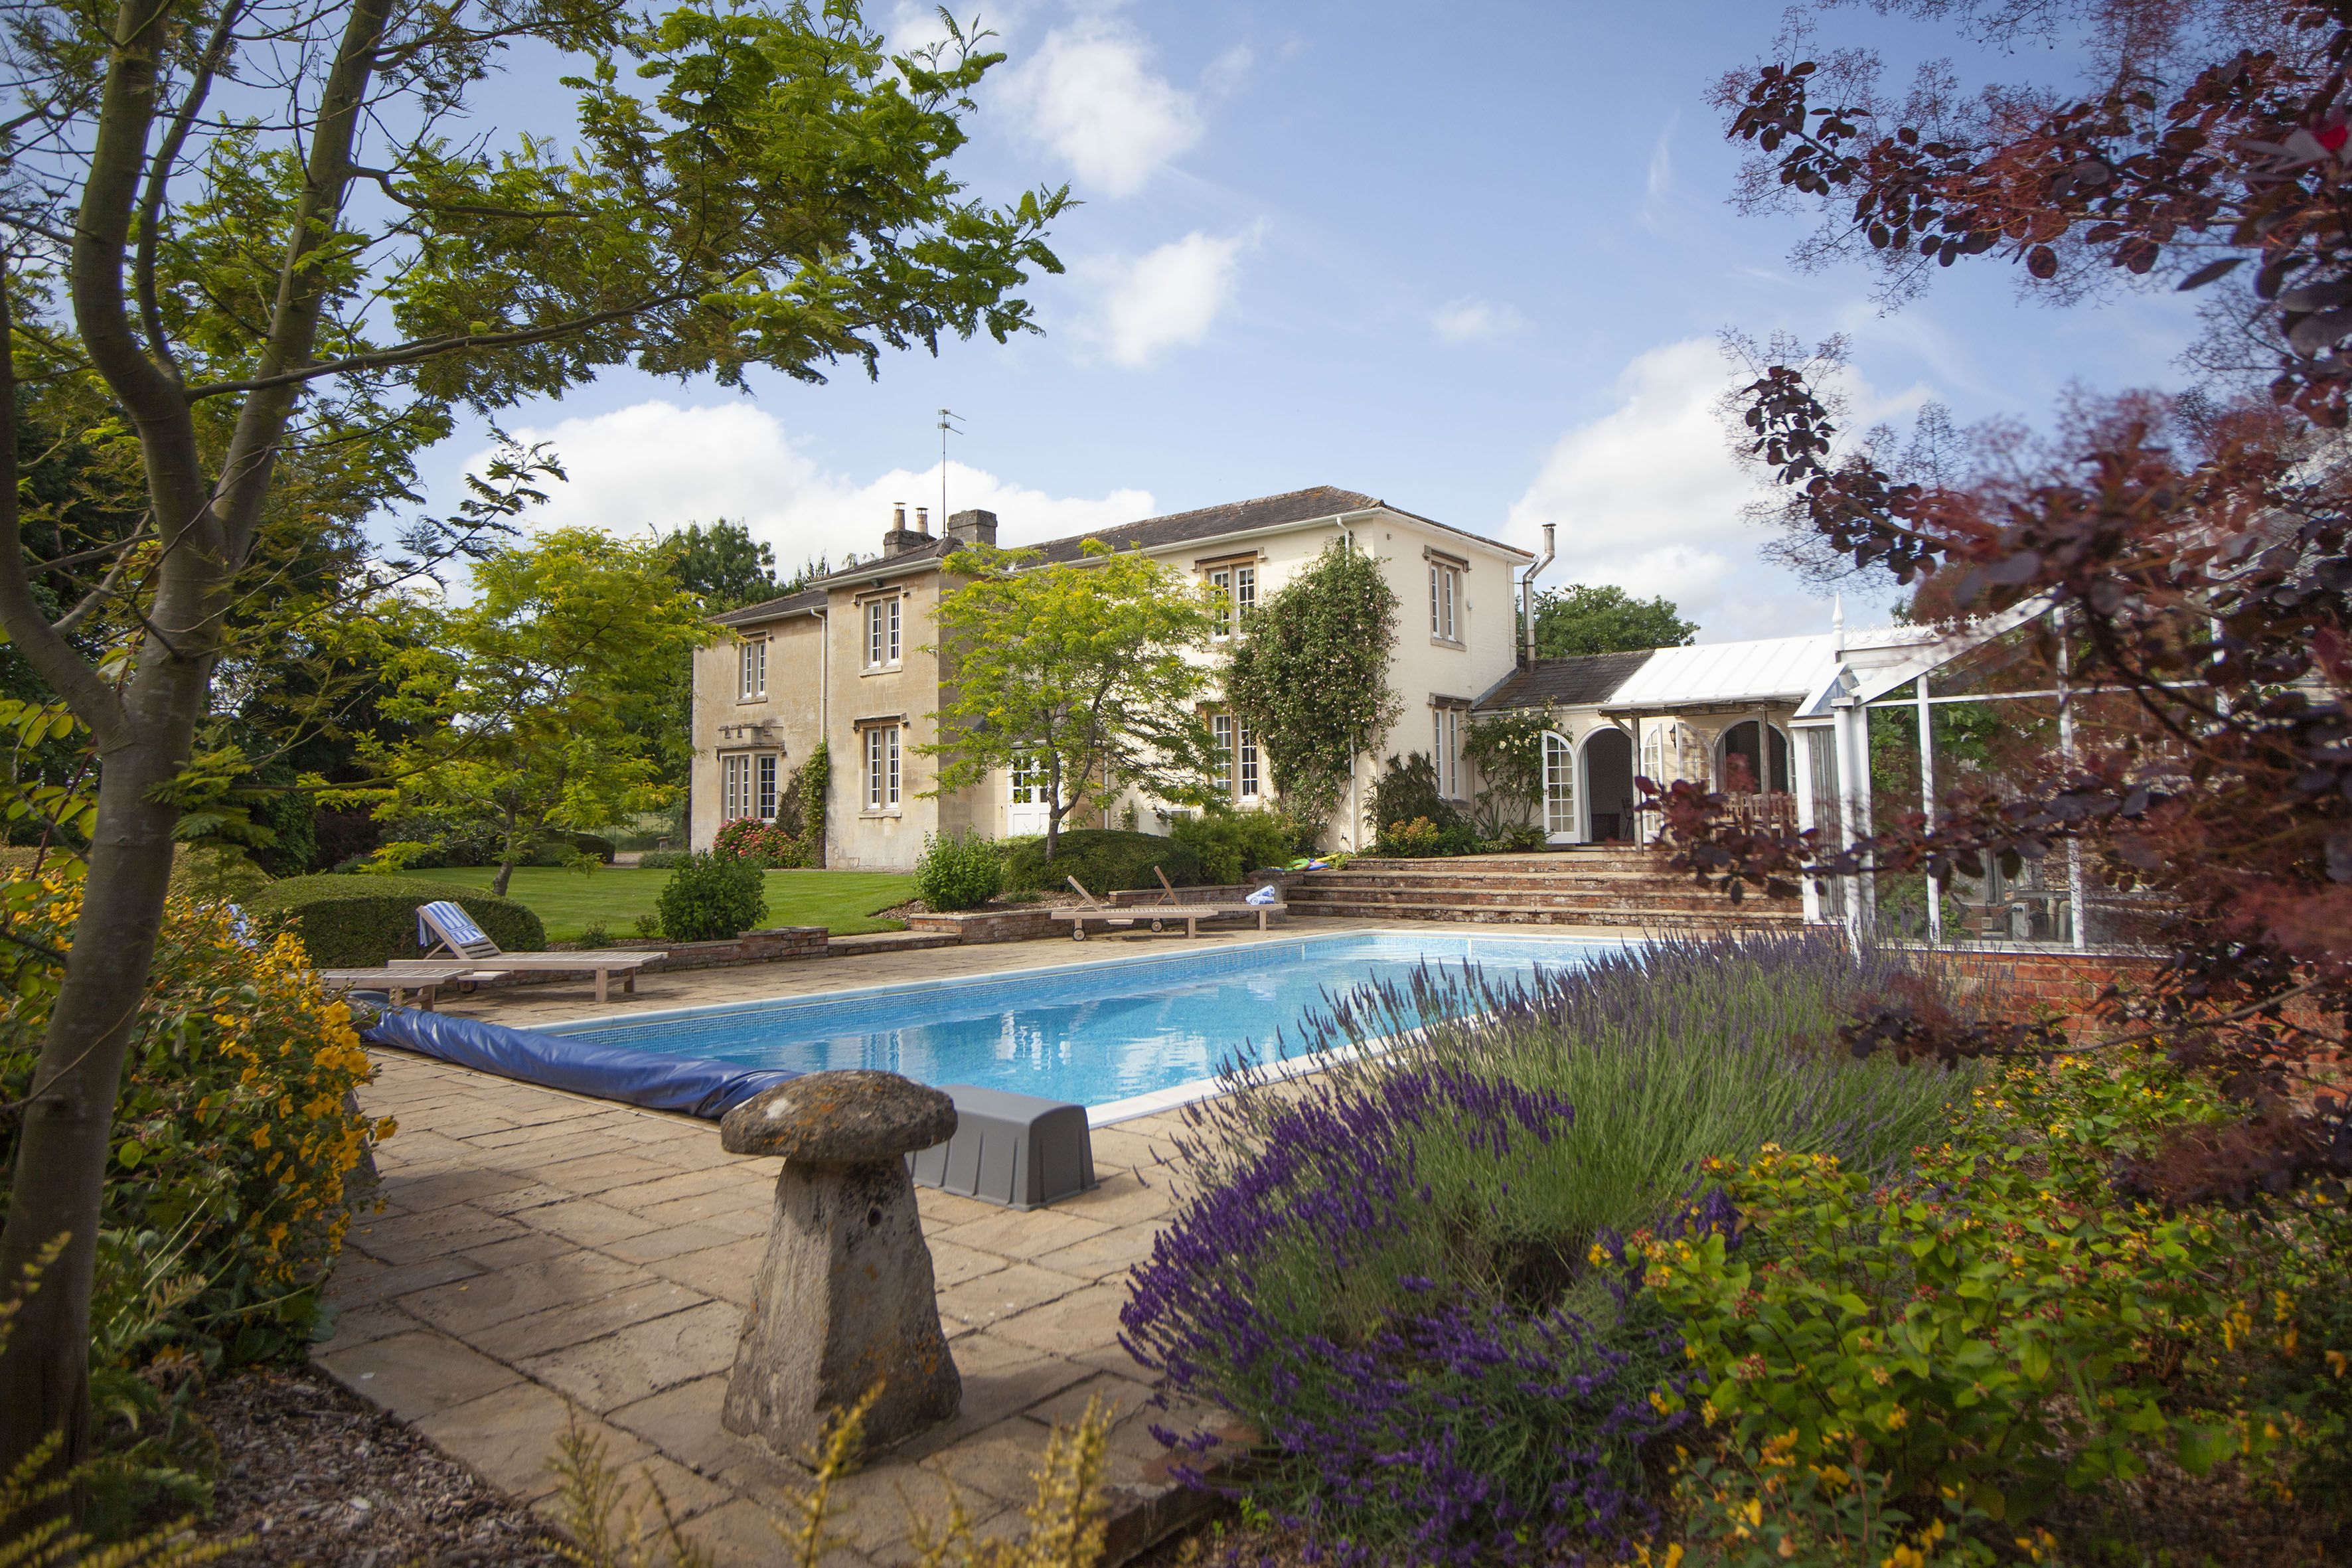 The farmhouse with heated swimming pool